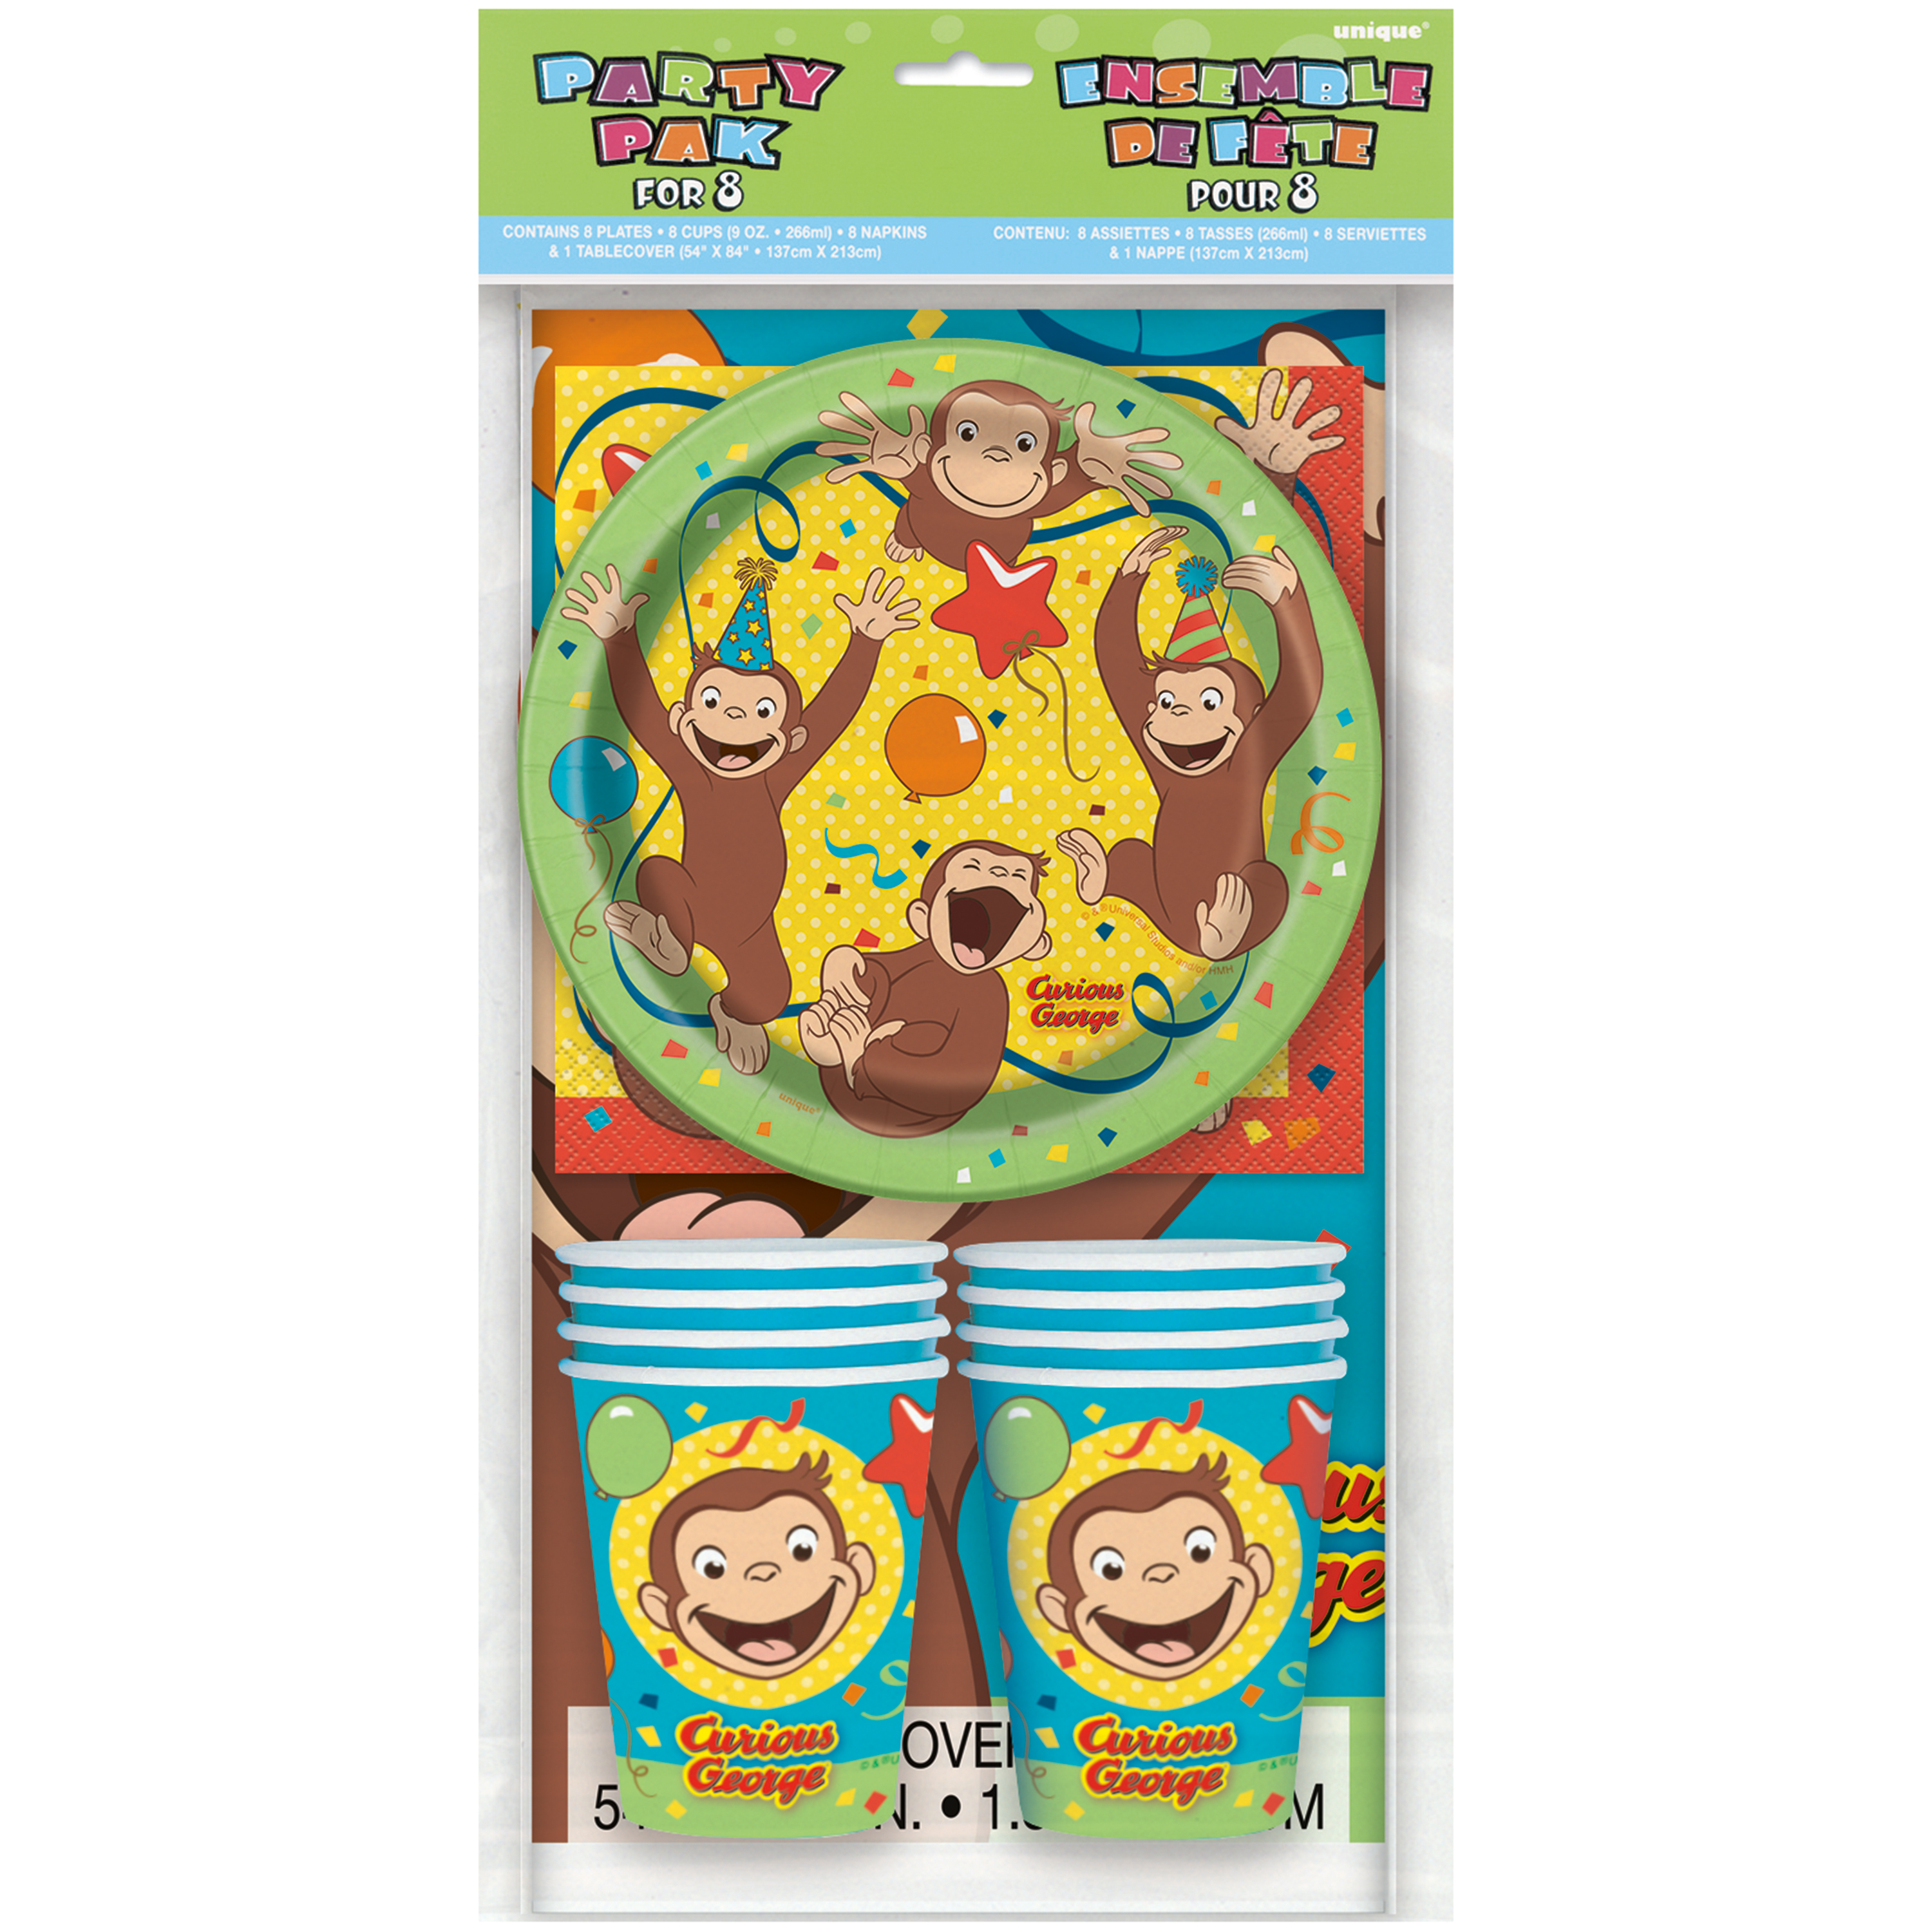 Curious George Party Tableware Kit for 8